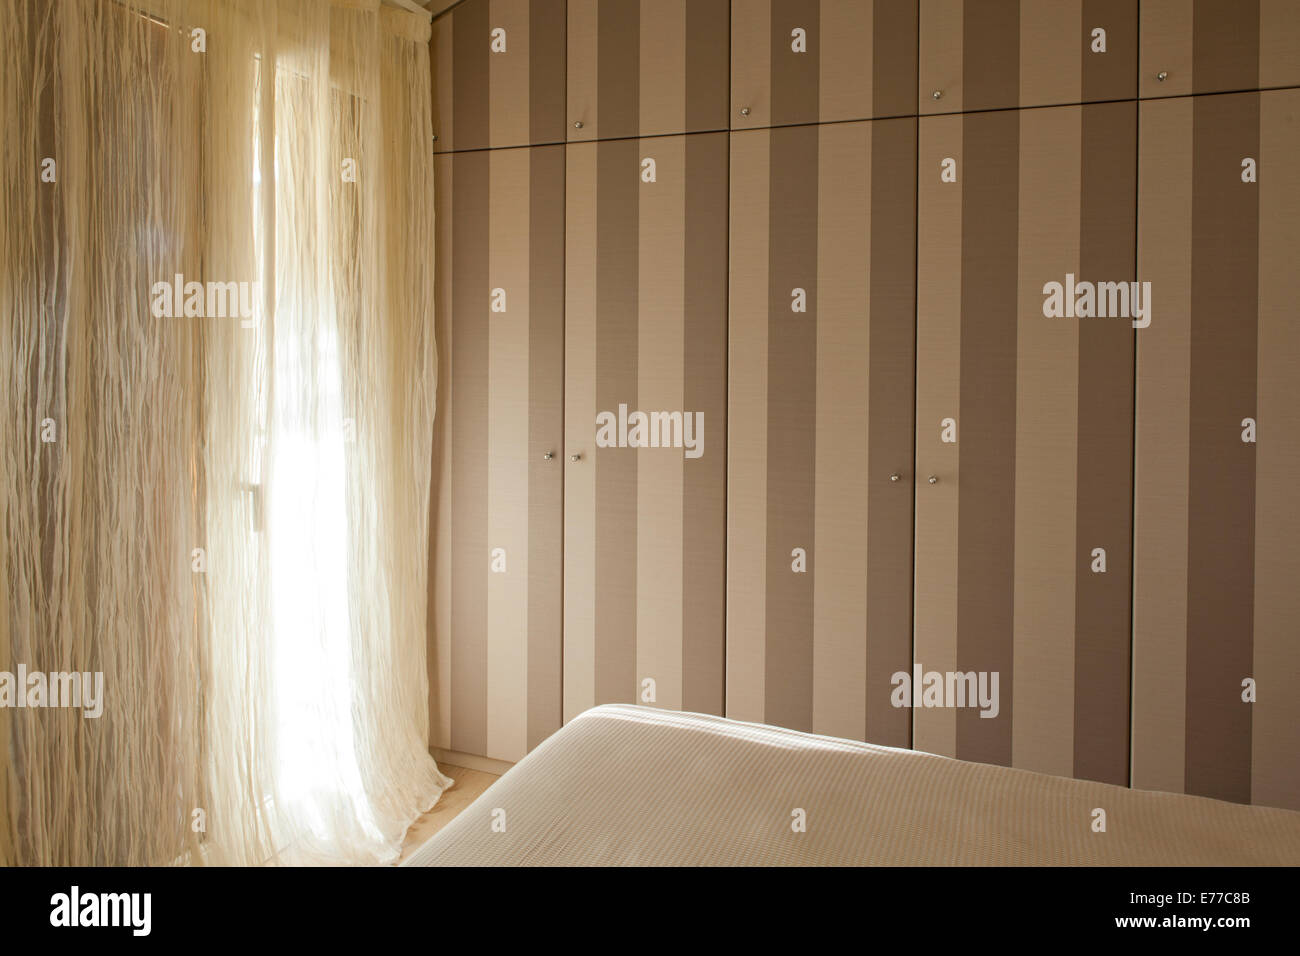 MASTER BEDROOM WARDROBE COVERED WITH STRIPED WALLPAPER - Stock Image